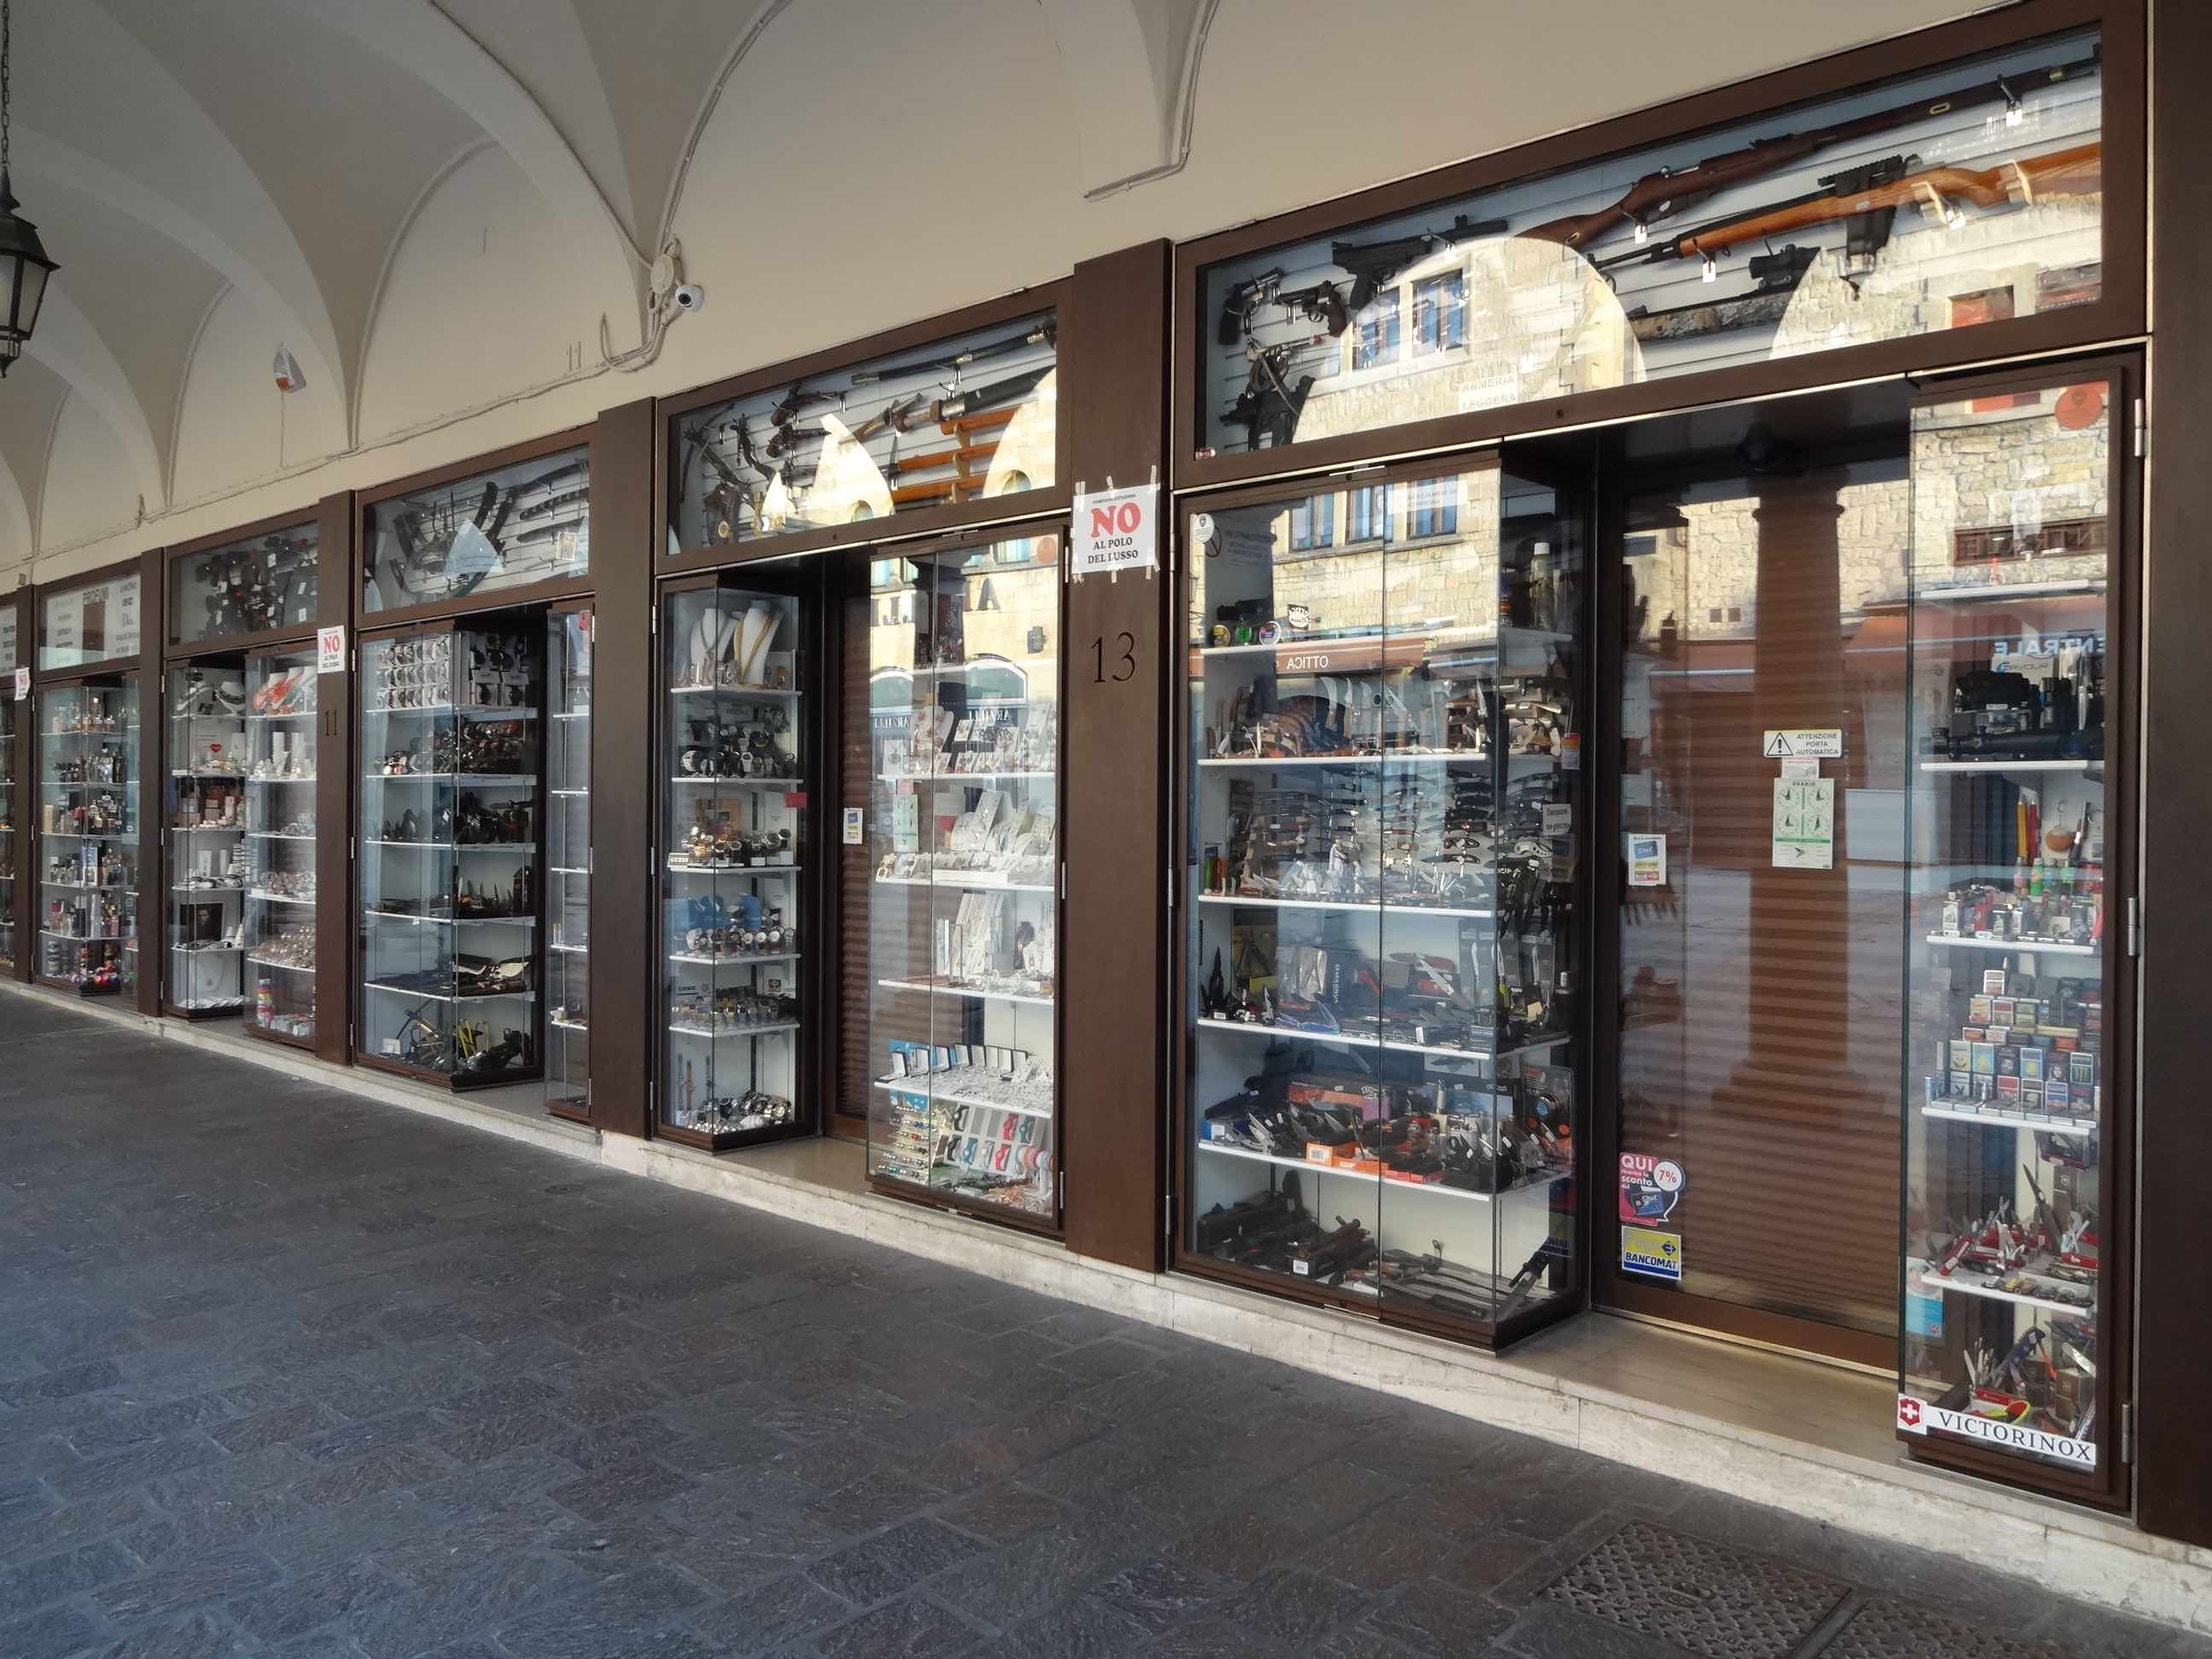 San Marino, San Marino City, weapons obsession, row of shops | The ...